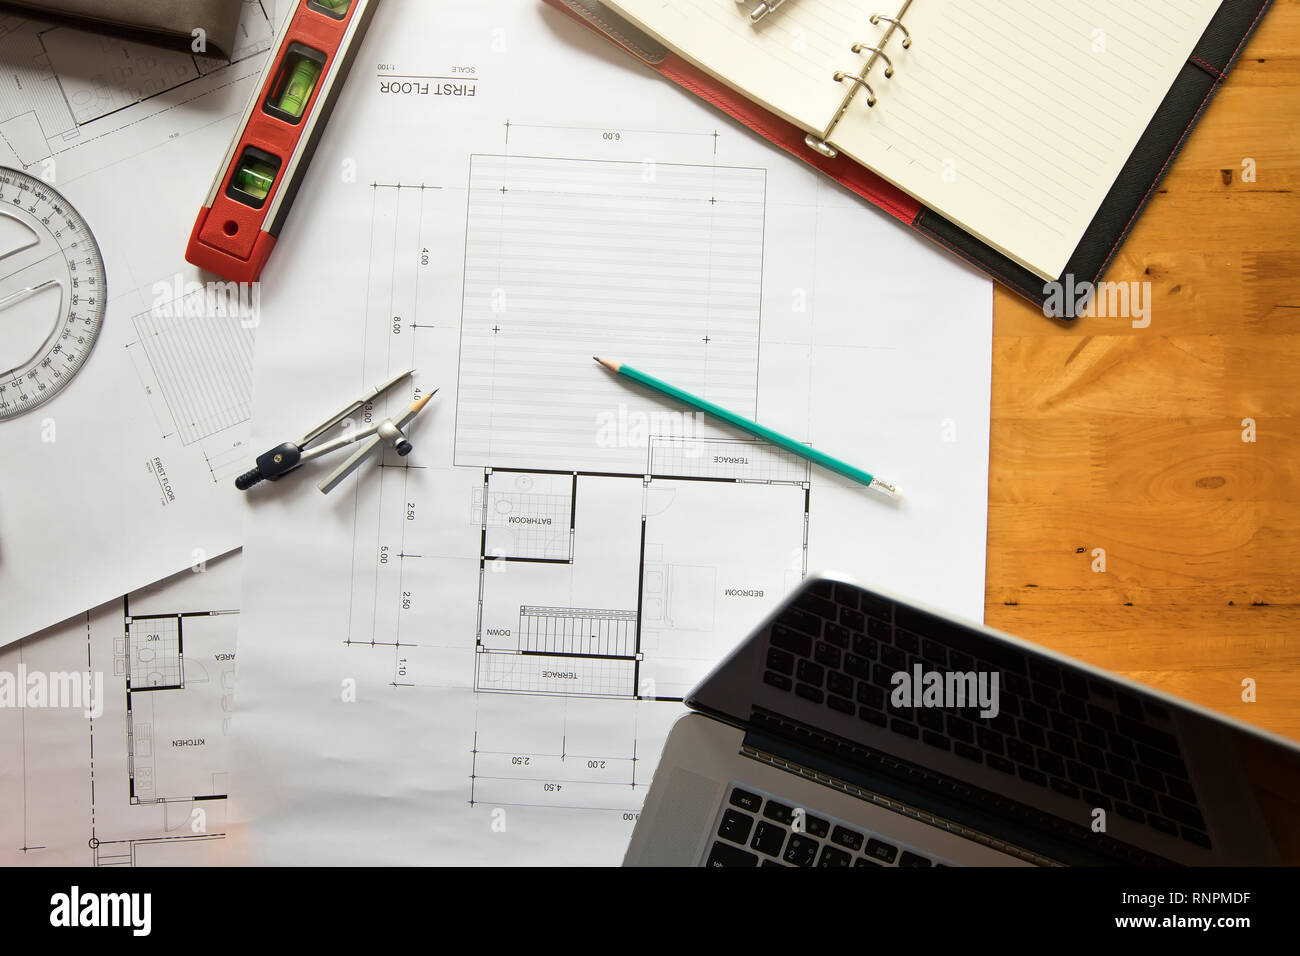 Top view of measurement tool with helmet and laptop on blueprint, architectural concept - Stock Image